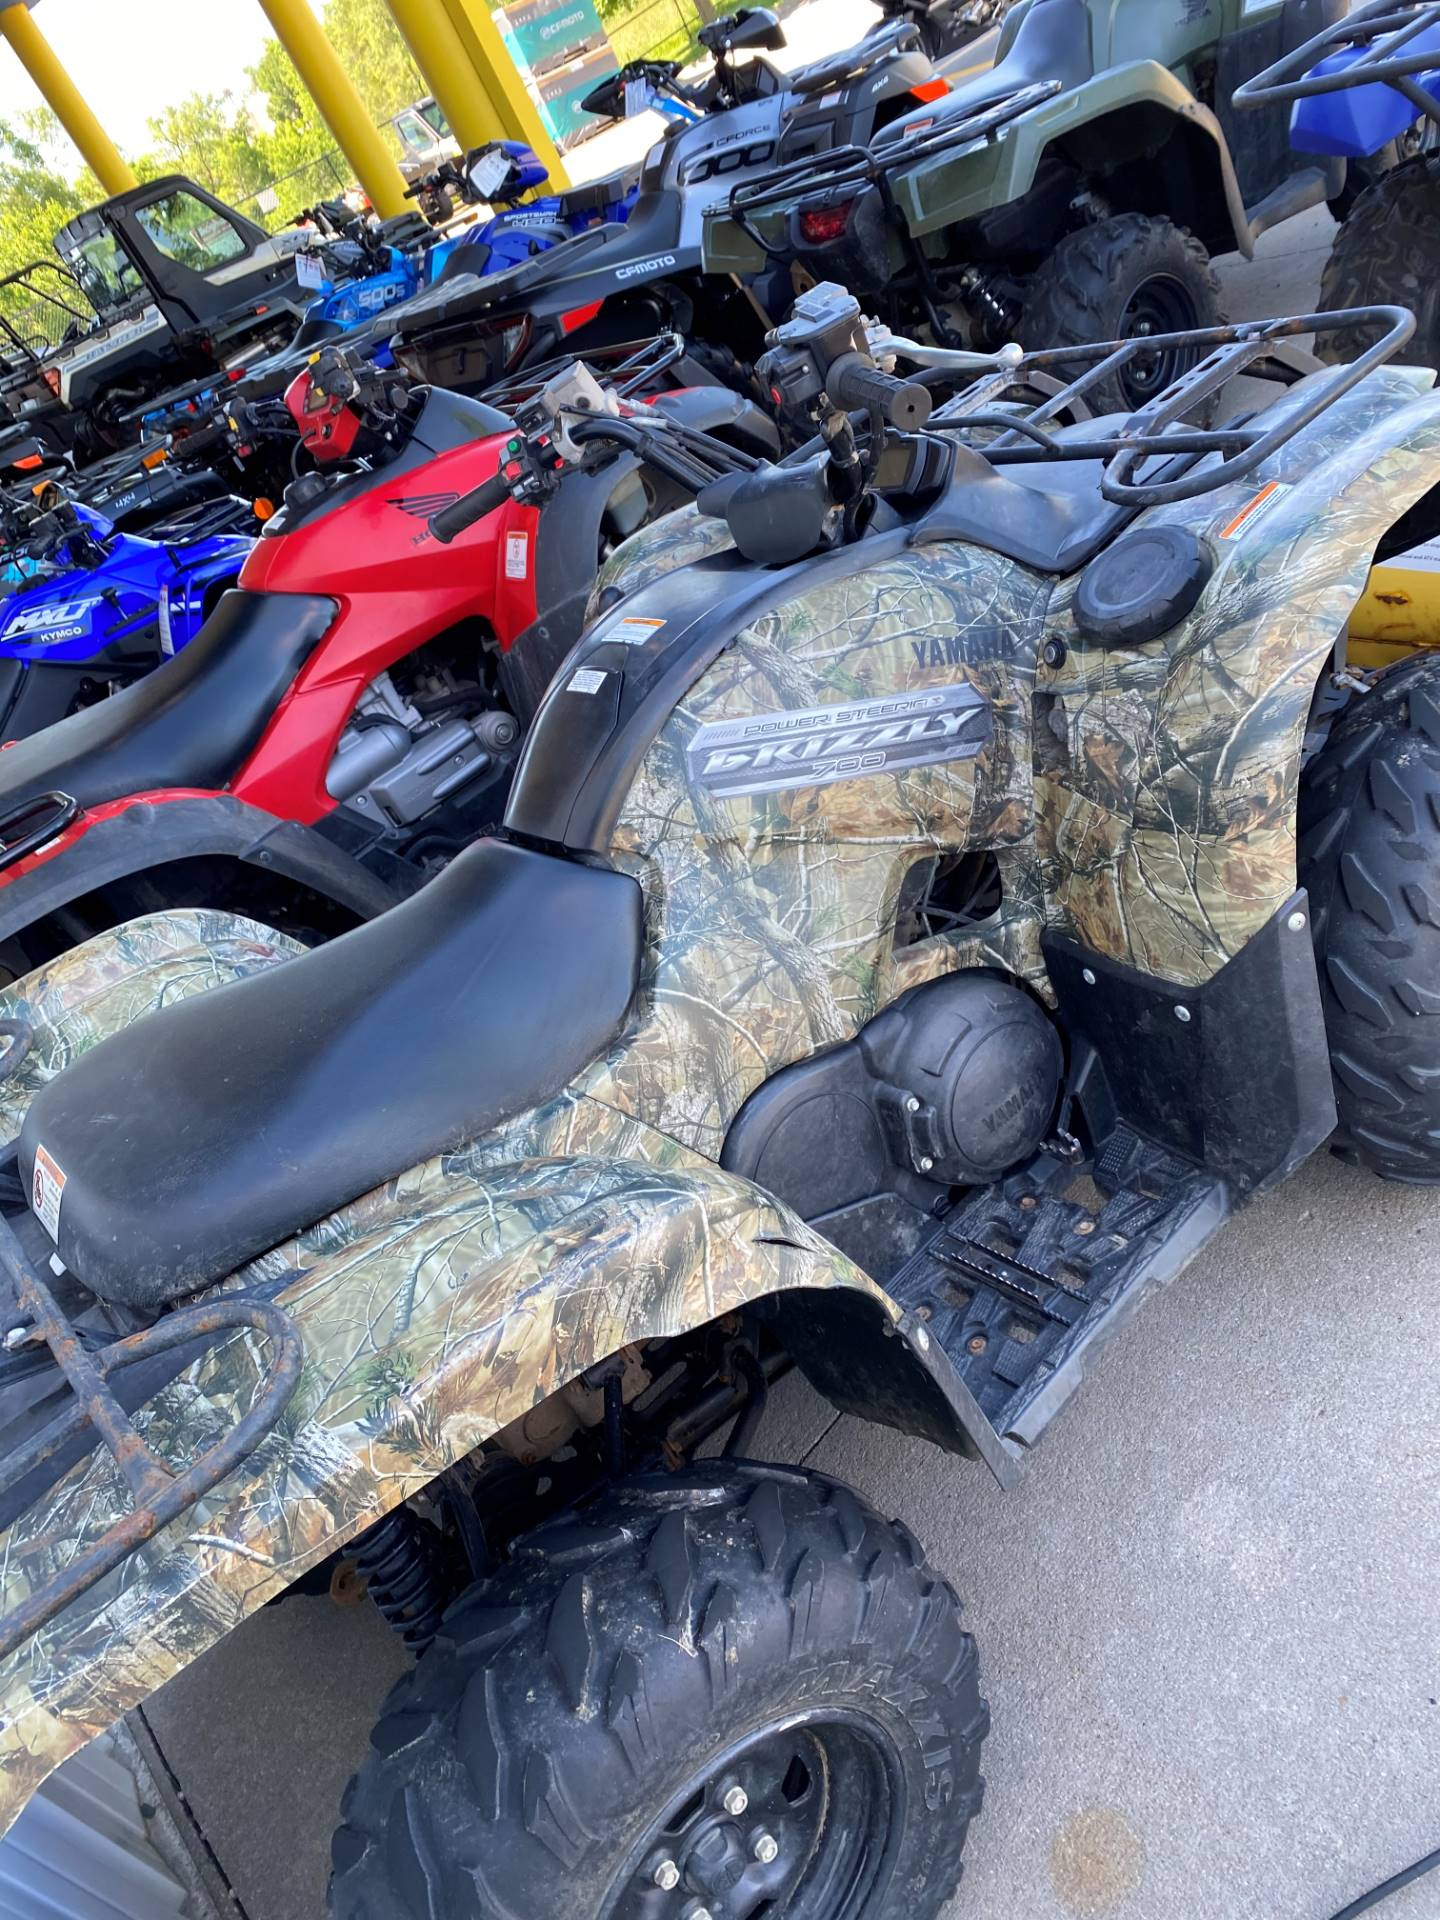 2013 Yamaha Grizzly 700 FI Auto. 4x4 in Iowa City, Iowa - Photo 2